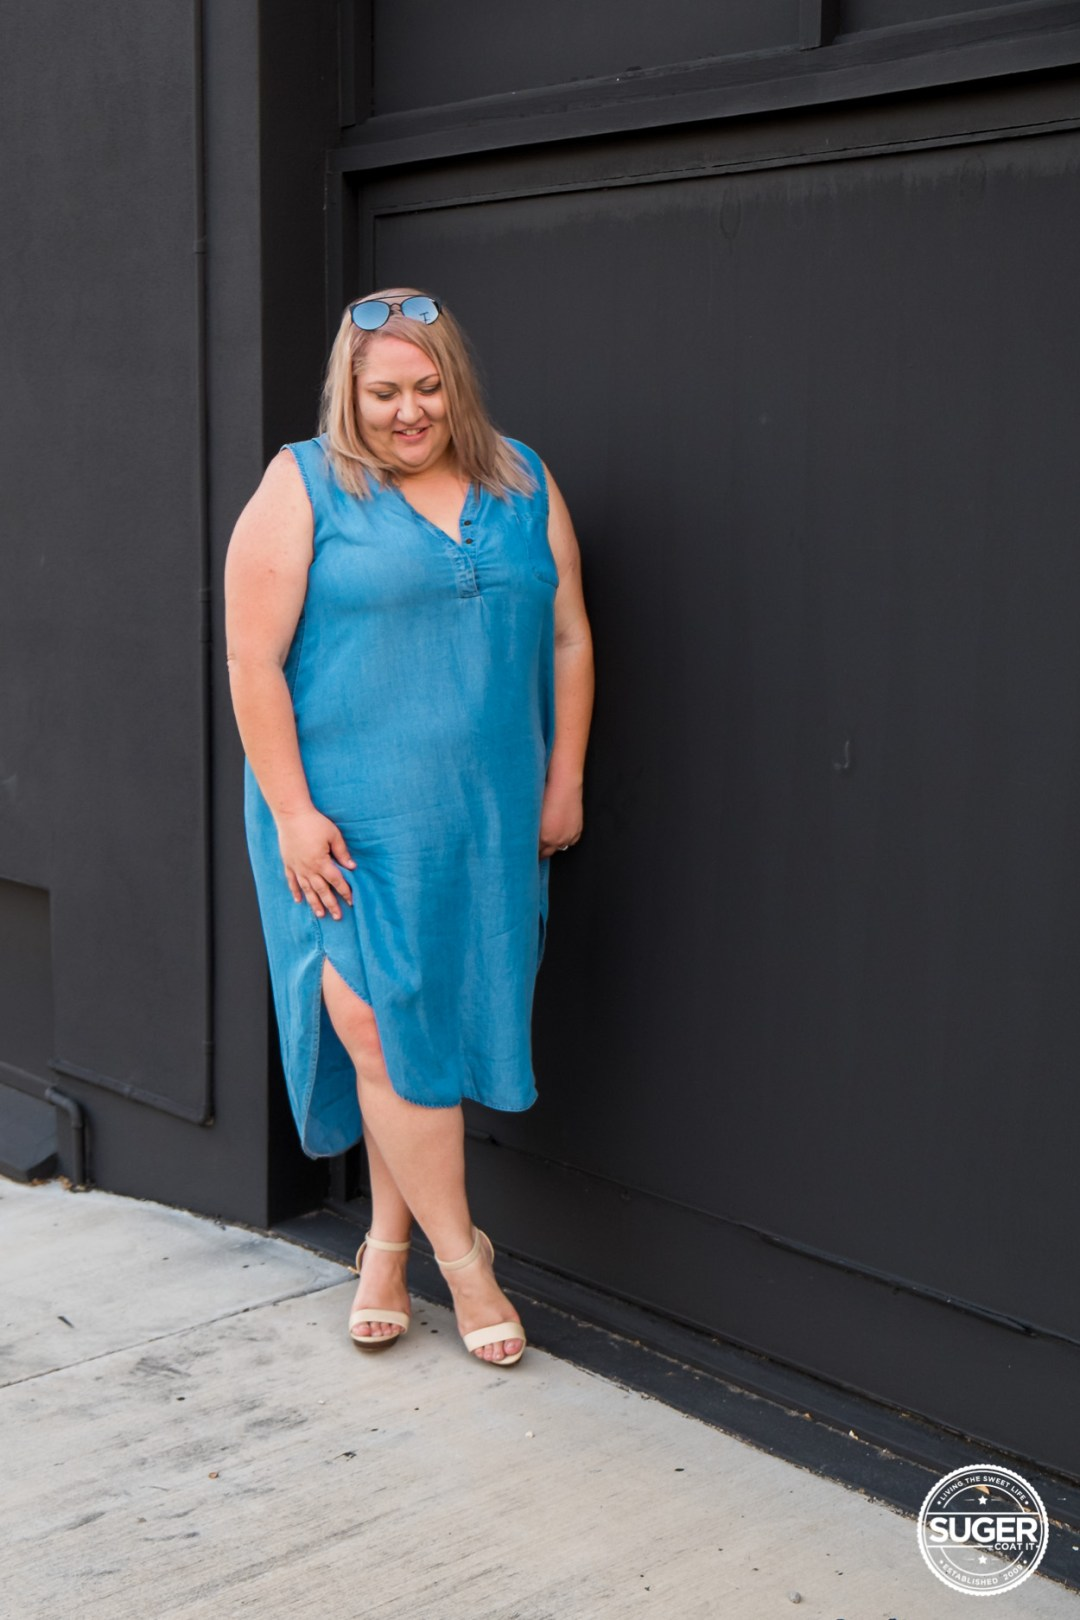 valentina-loves-david-jones-chambray-dress-plus-size-blogger-8